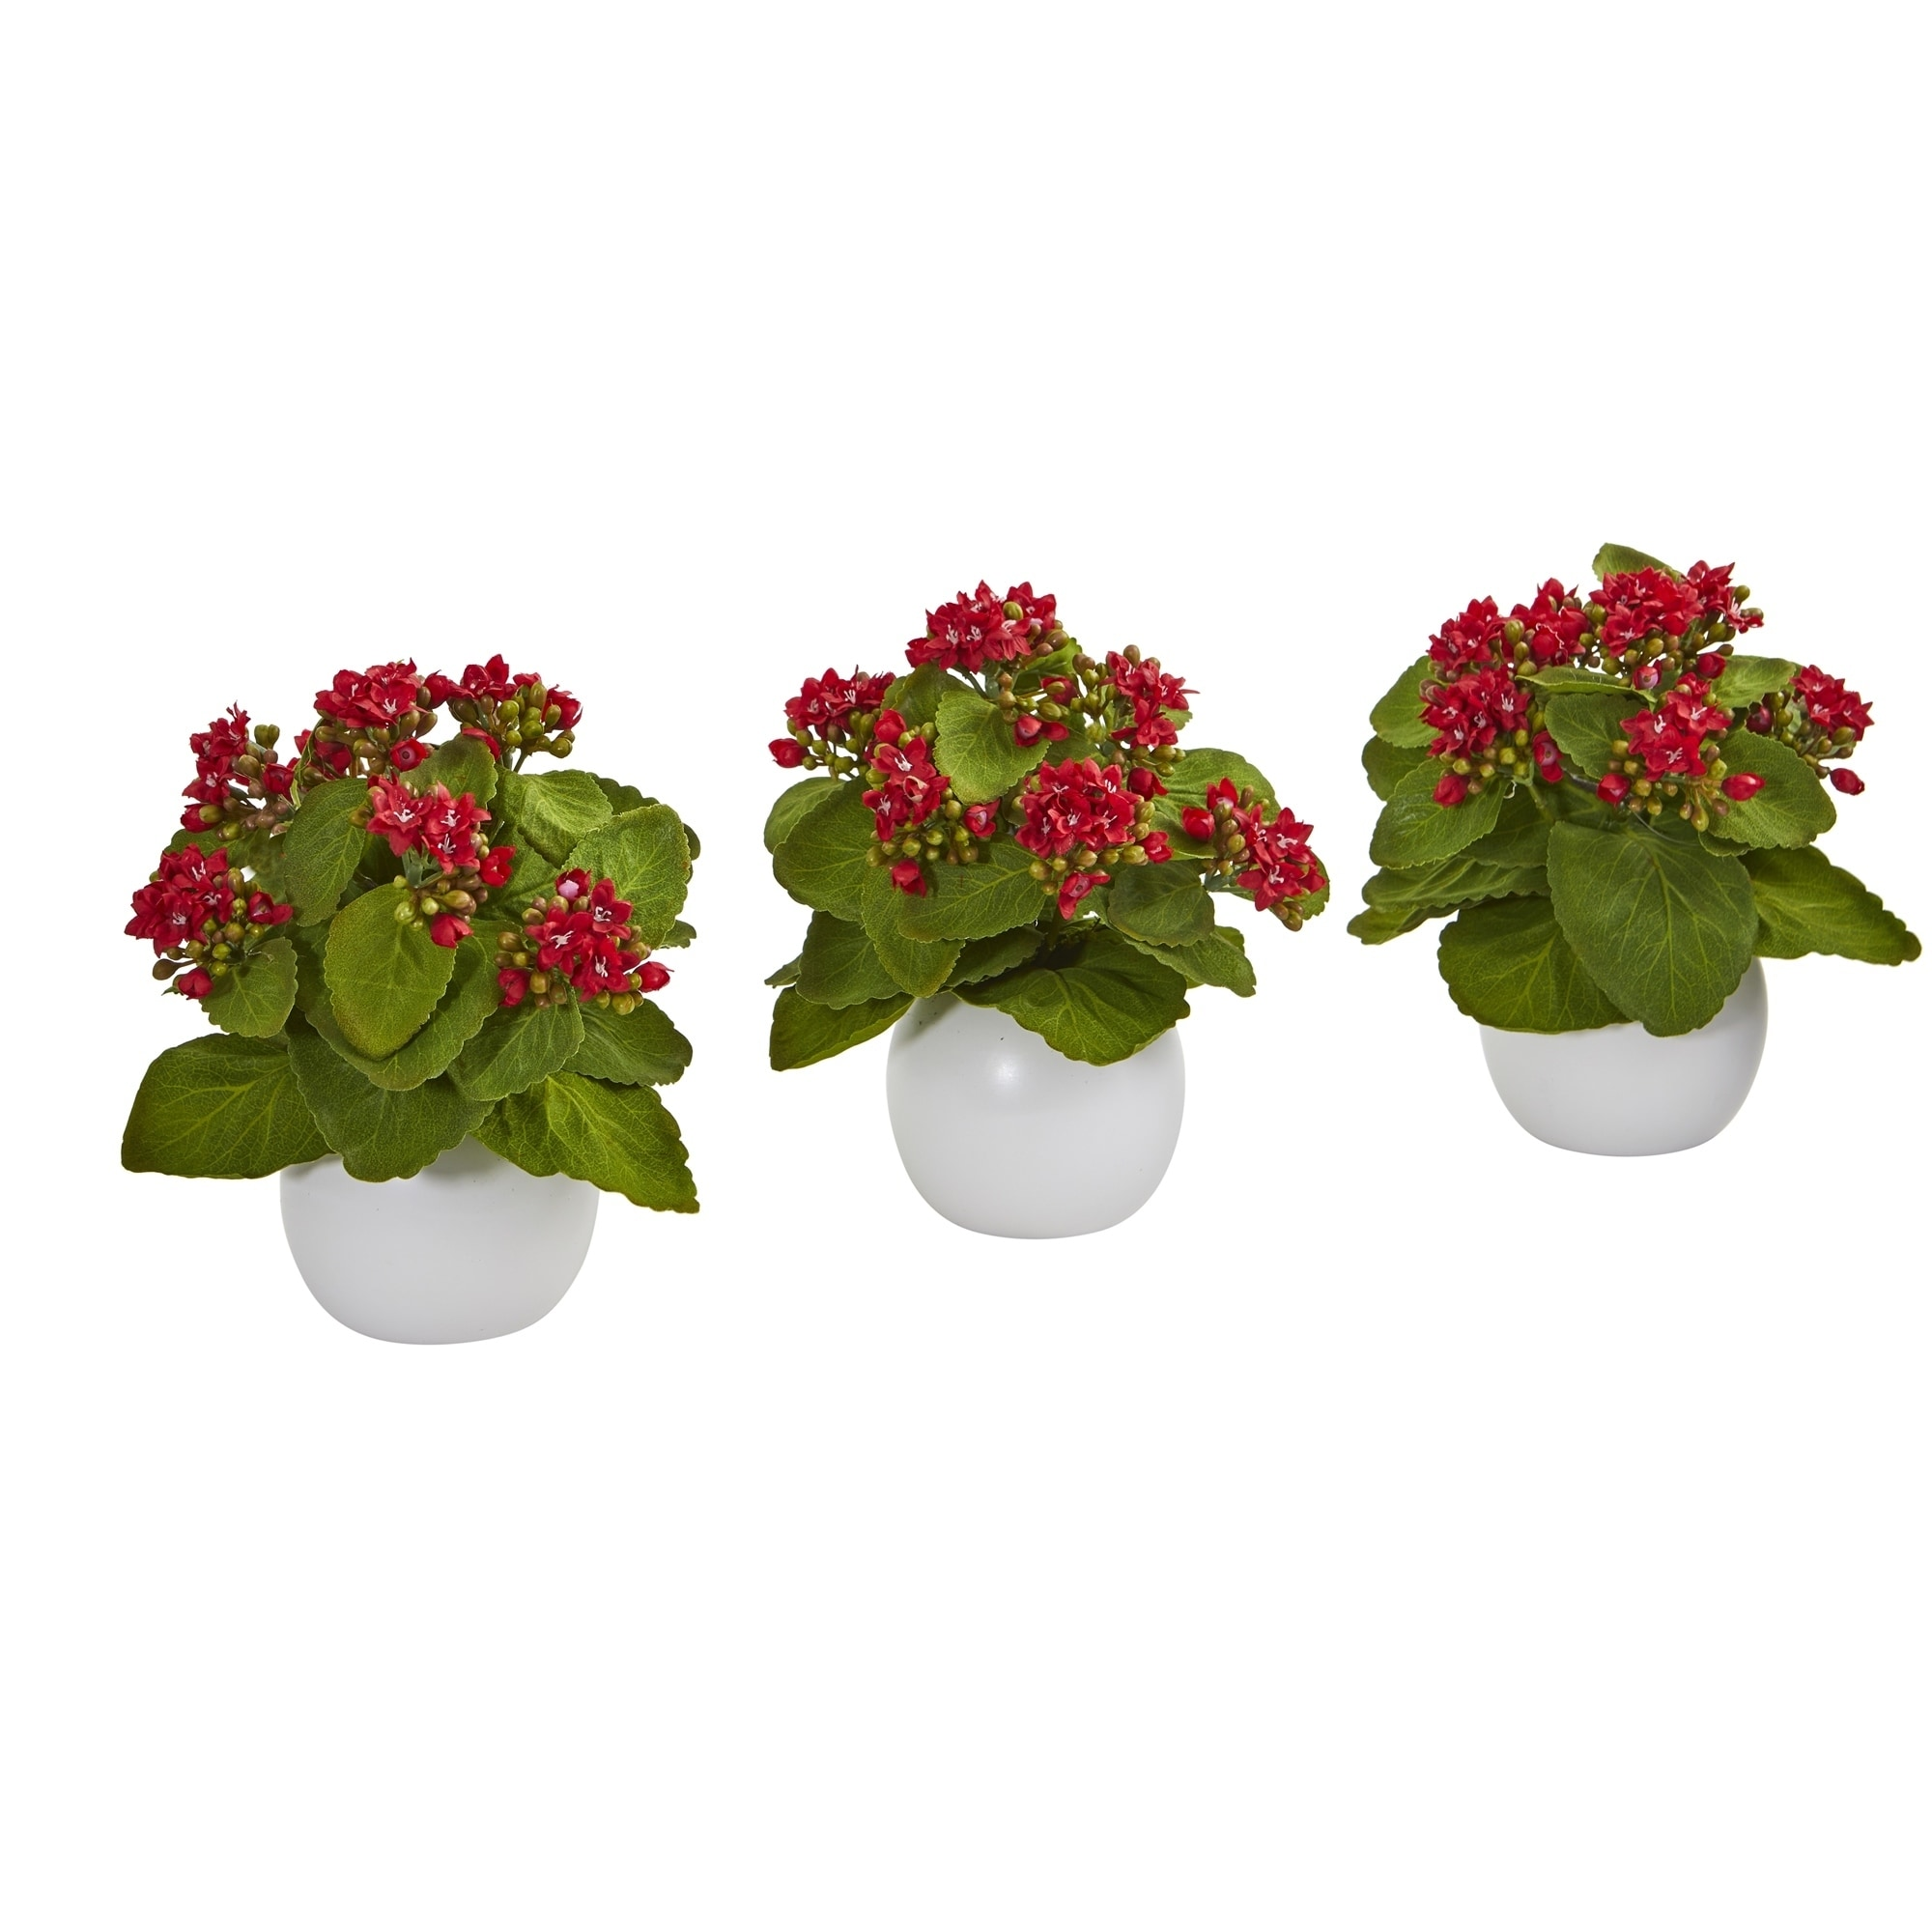 8 Kalanchoe Artificial Plant in White Vase (Set of 3)